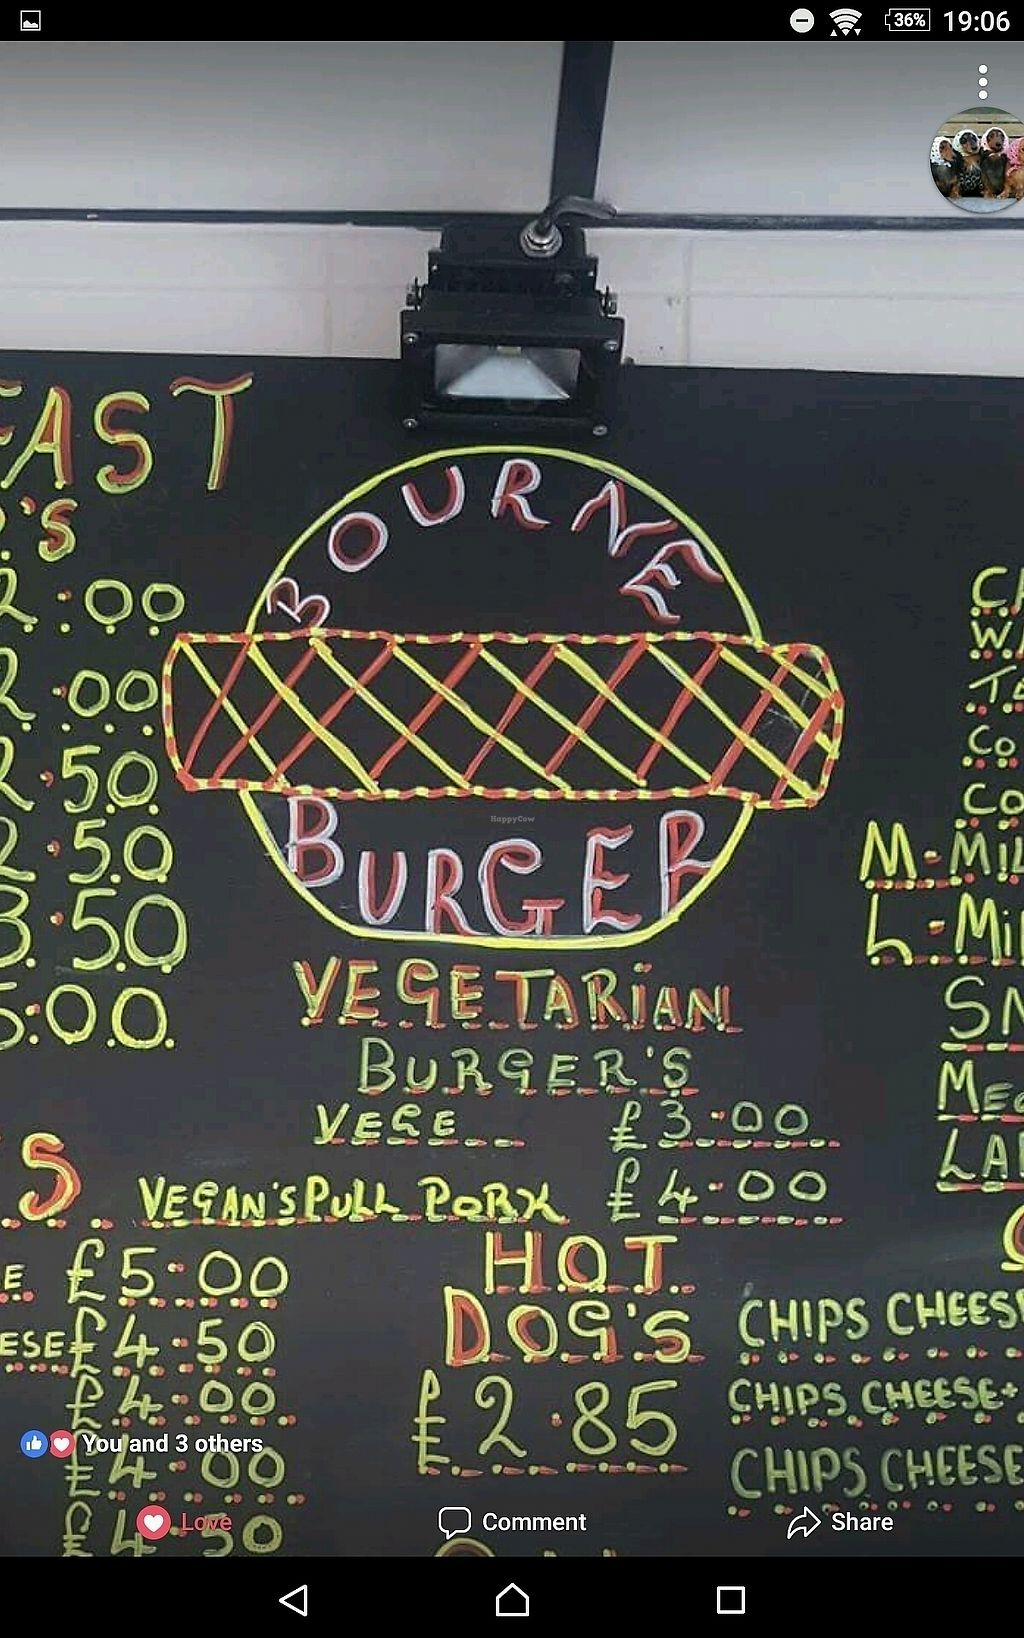 """Photo of Bourne Burger  by <a href=""""/members/profile/Mandiebythesea"""">Mandiebythesea</a> <br/>Menu <br/> September 27, 2017  - <a href='/contact/abuse/image/101823/309113'>Report</a>"""